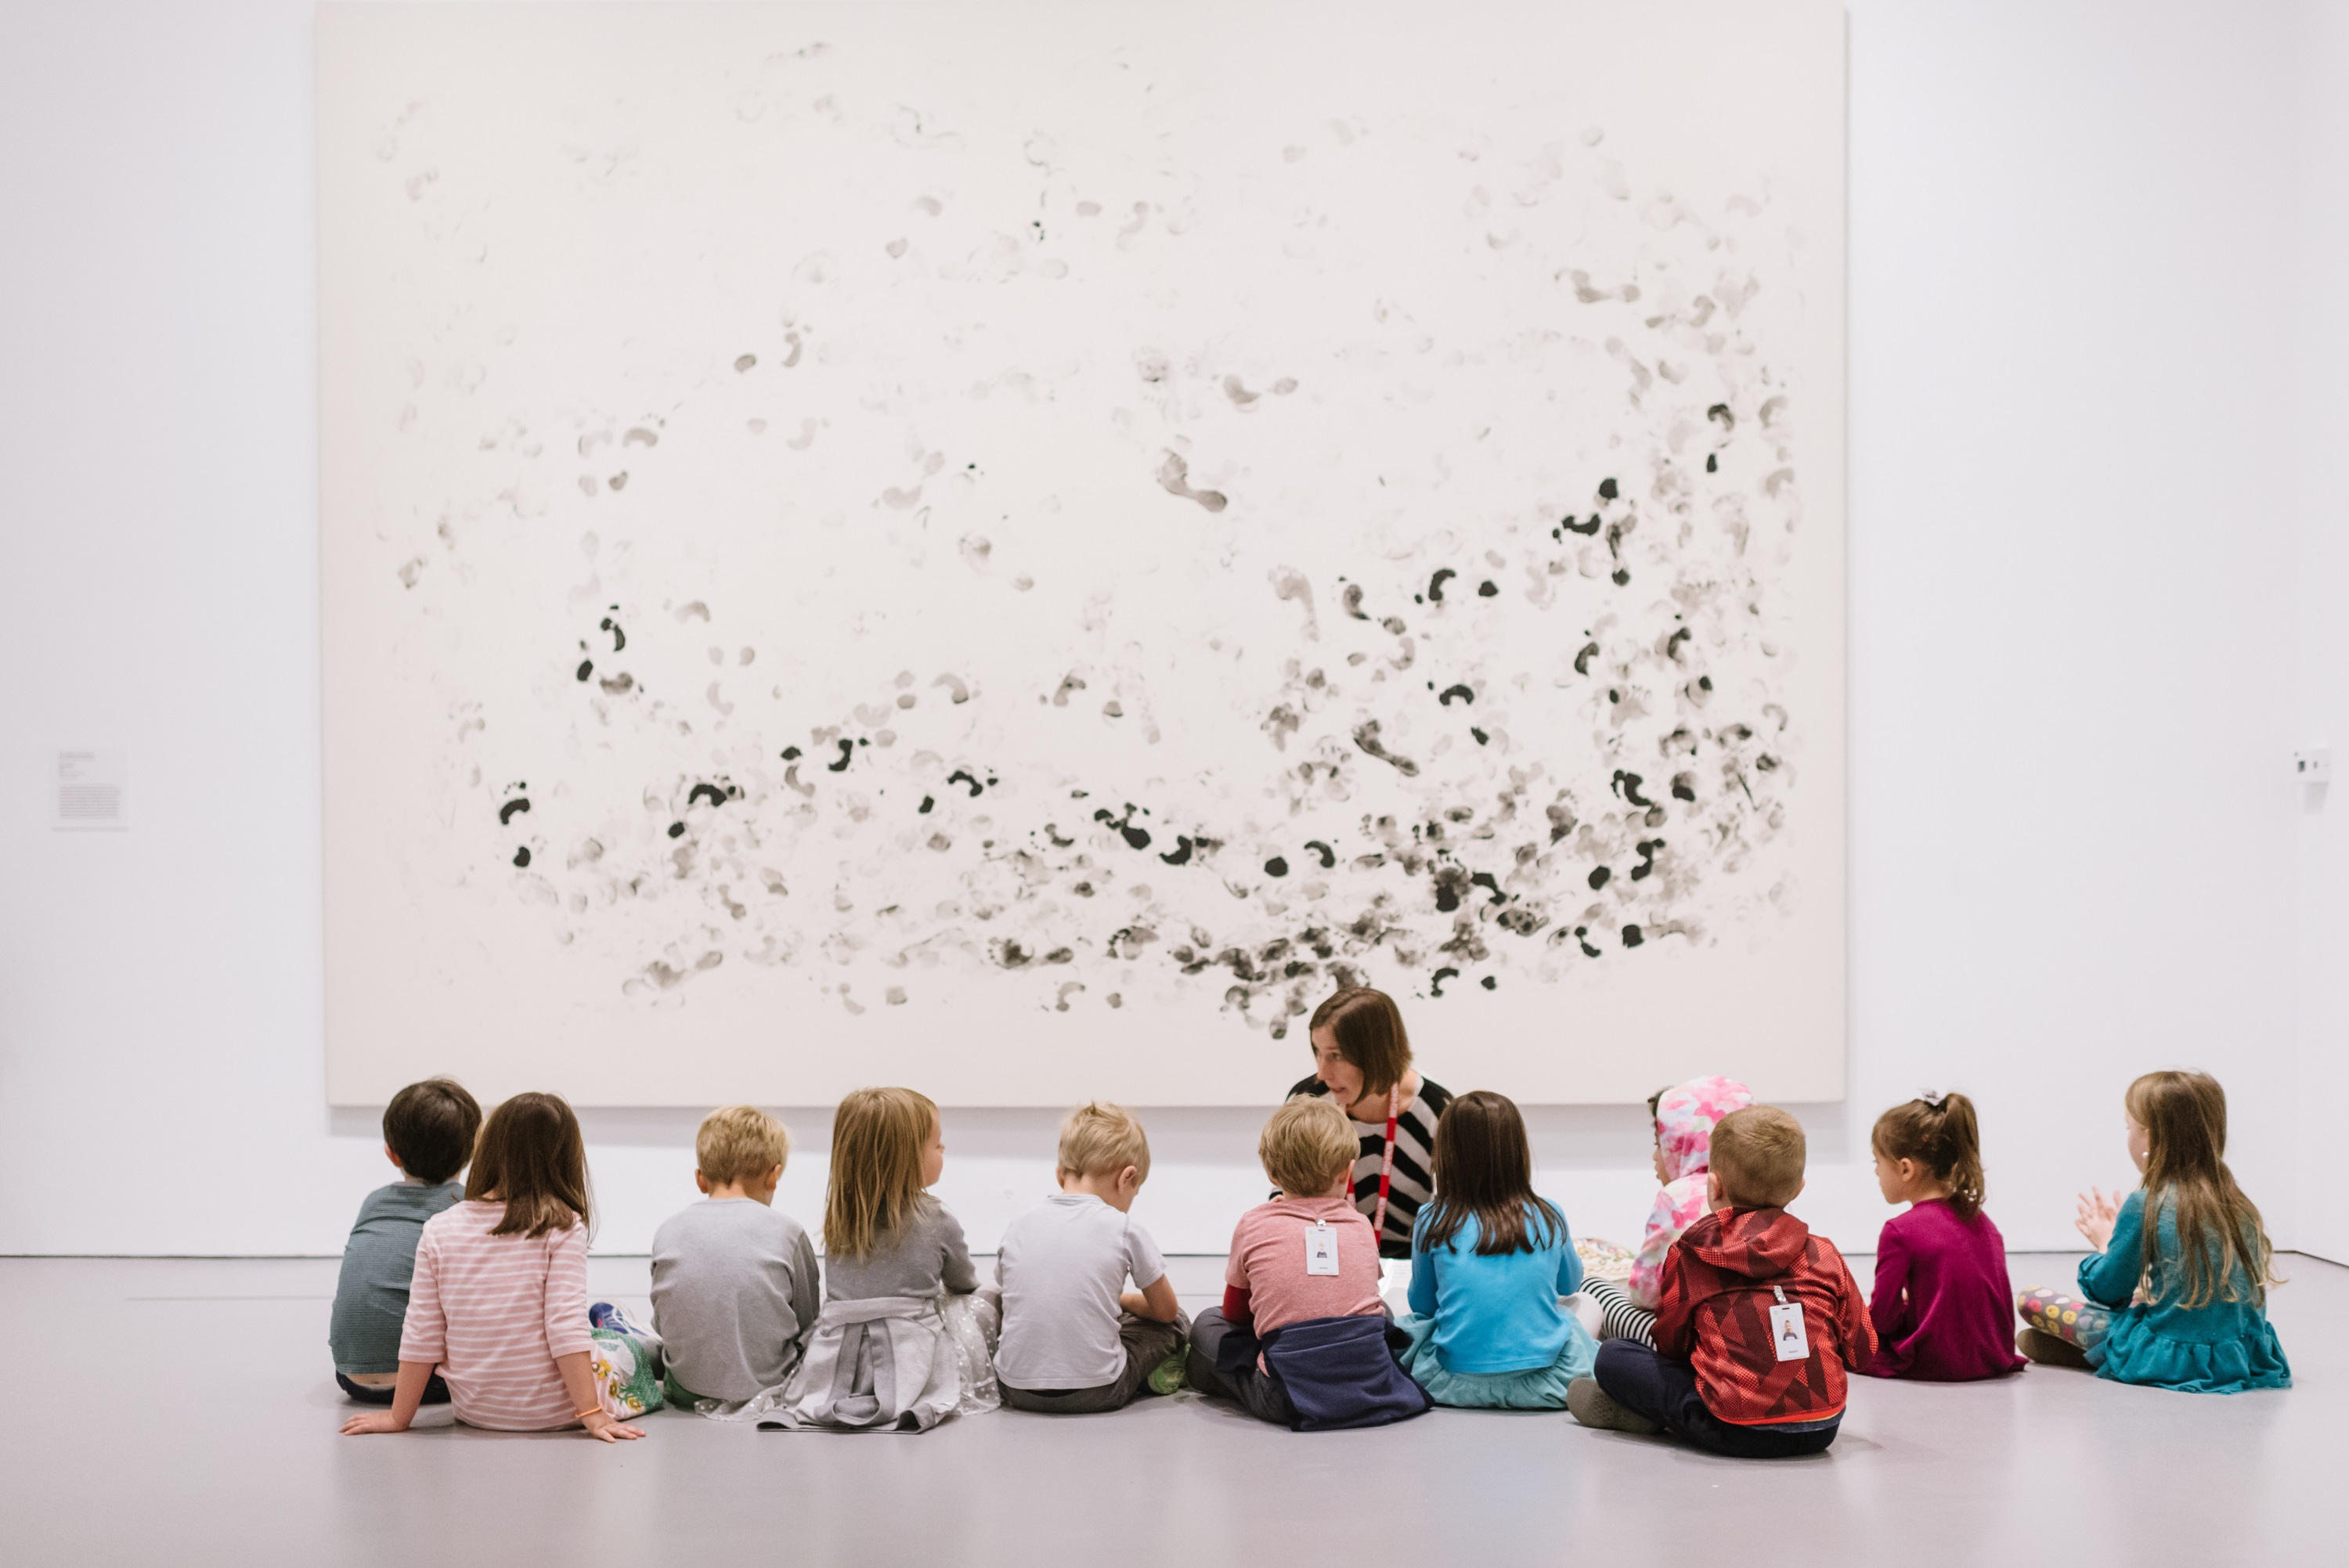 Group of small children sitting in front of an artwork in a museum gallery